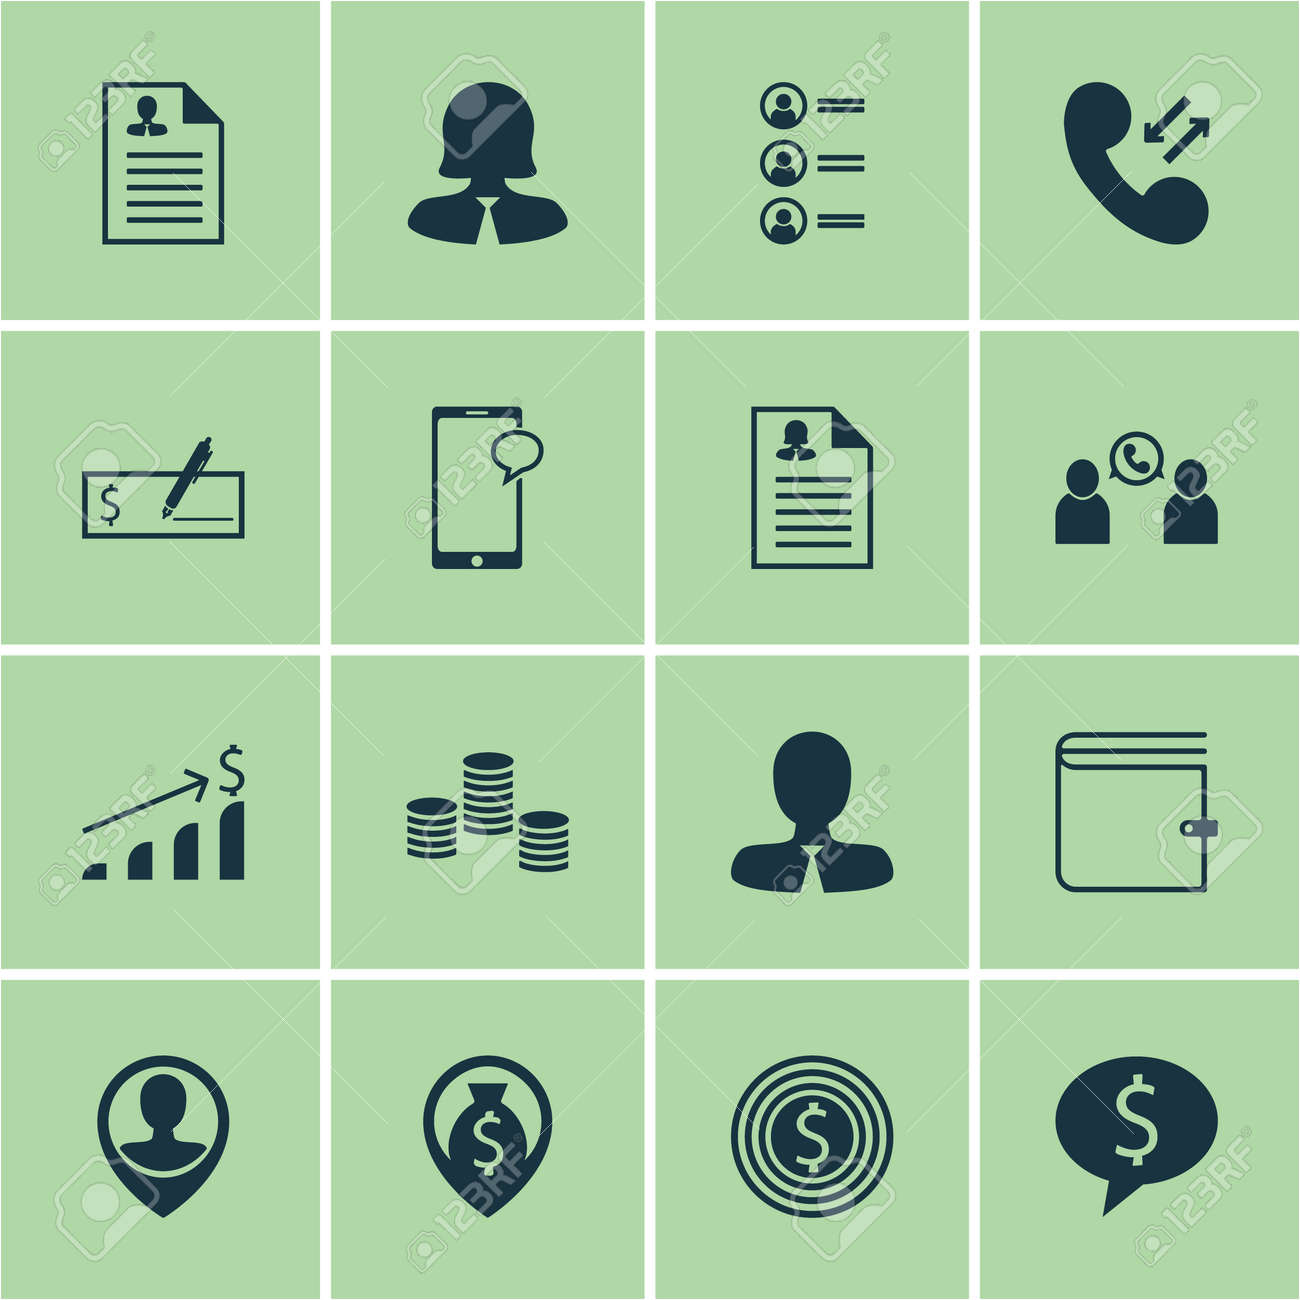 Set Of Human Resources Icons On Curriculum Vitae Female Application